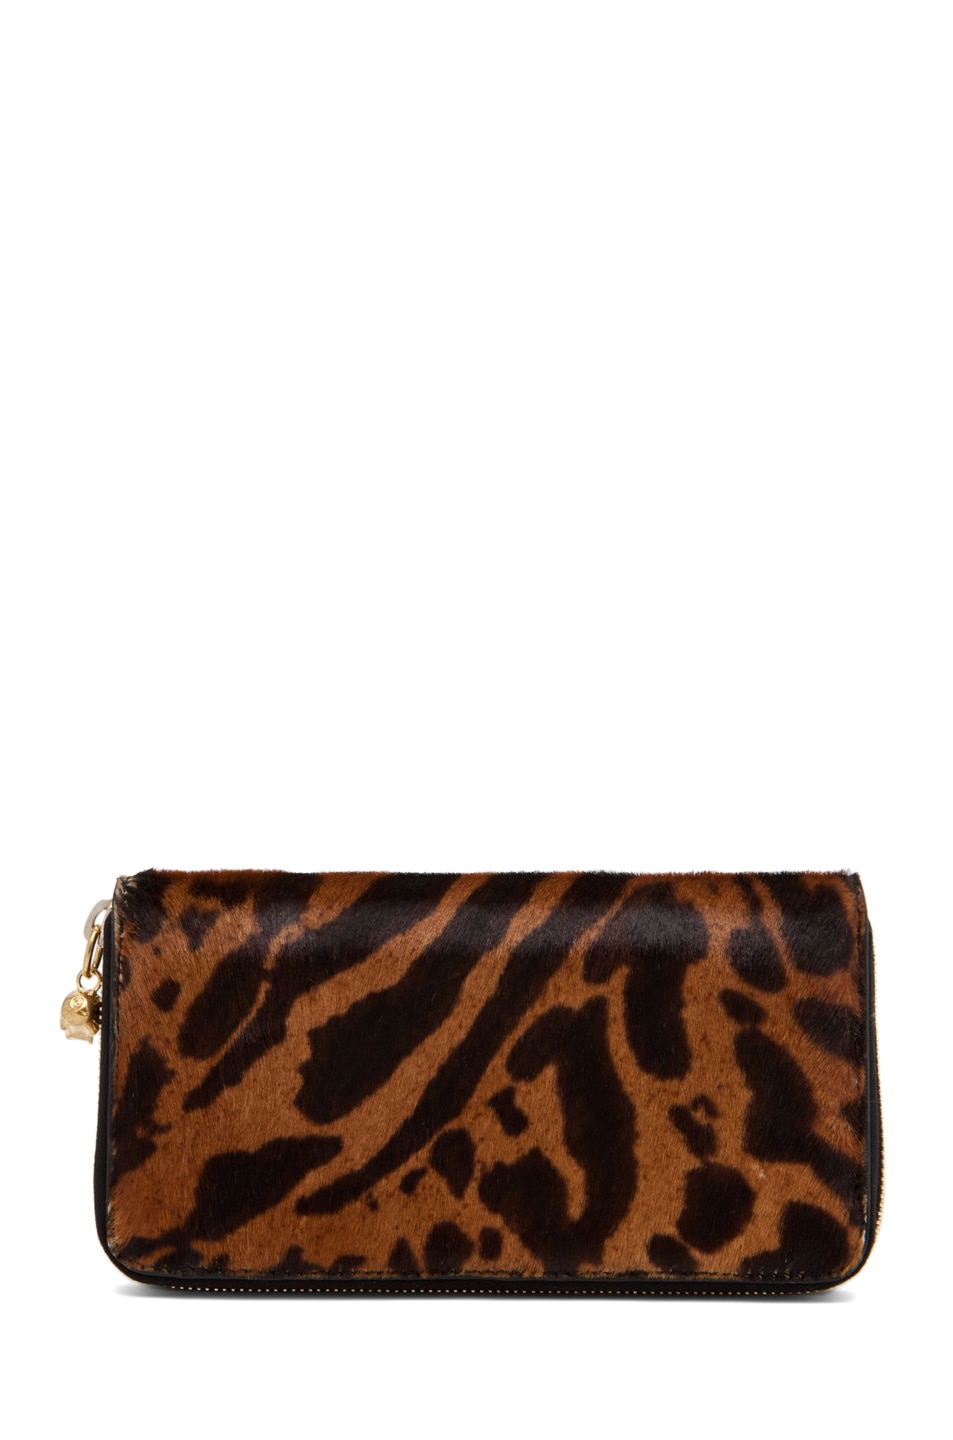 Image 2 of Alexander McQueen Zip Wallet in Natural/Black